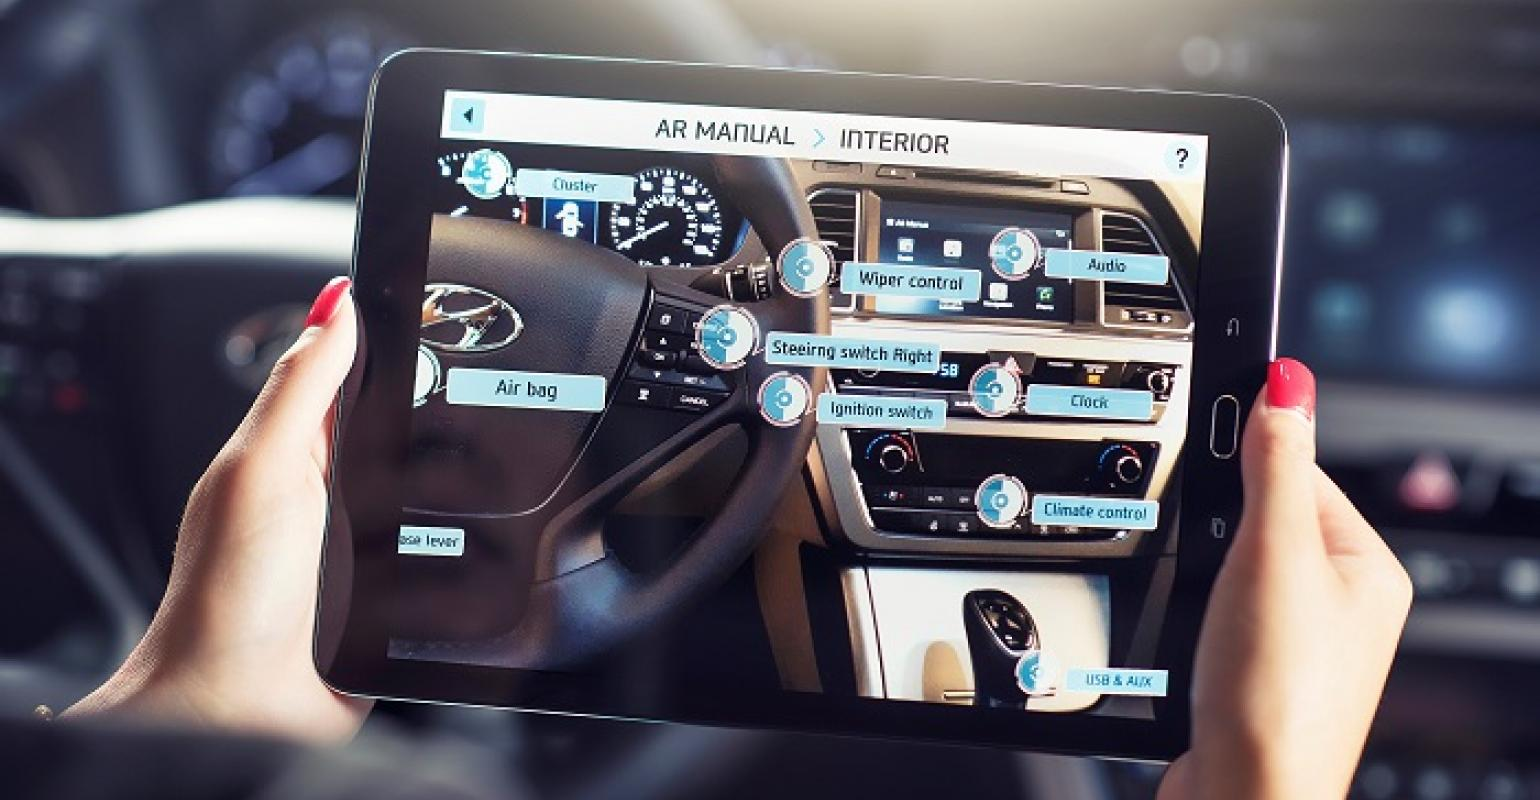 Hyundai App Looks to Supplement, Eventually Replace Owner's Manual